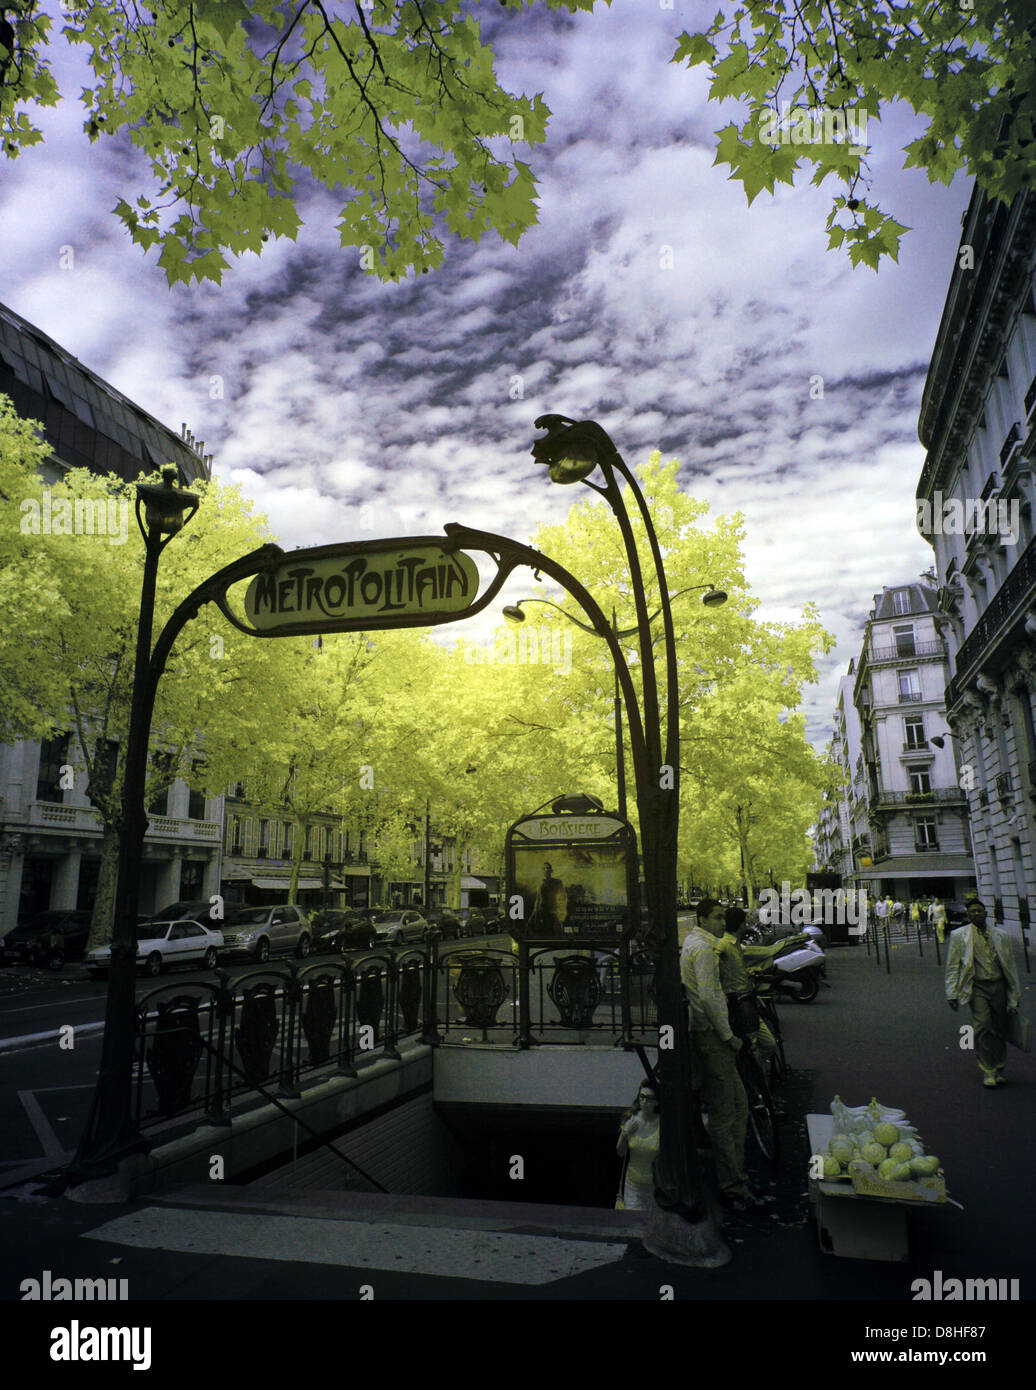 An,Art,Nouveau,Paris,metro,station,entrance,taken,with,an,IR,Infra-Red,adapted,Canon,5D,camera,DSLR,France,Europe,french,capital,unusual,gotonysmith,Guimard,entrances,tube,mass,transit,720nm,infrared,cast-iron,balustrade,decorated,in,plant-like,motifs,accompanied,by,a,Métropolitain,sign,supported,cast,iron,two,orange,globes,atop,ornate,cast-iron,supports,in,the,form,of,plant,stems,Metropolitan,Metropolitain,gotonysmith,Buy Pictures of,Buy Images Of